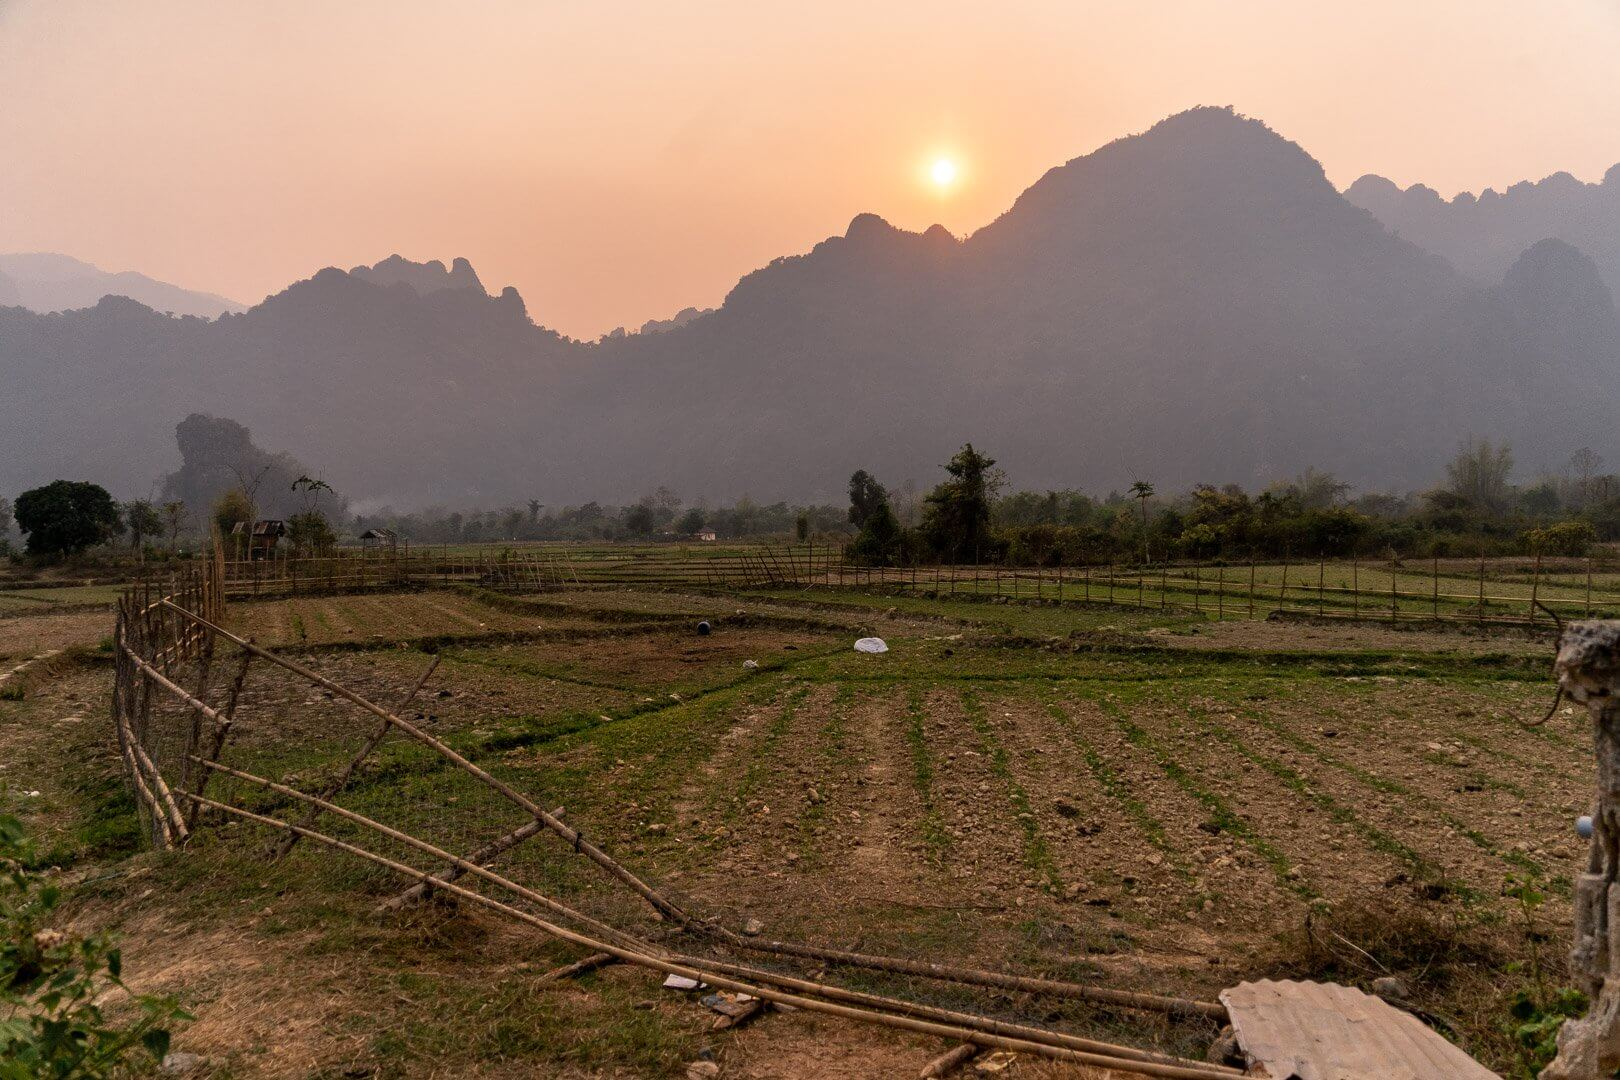 The rice terraces at sunset in Vang Vieng